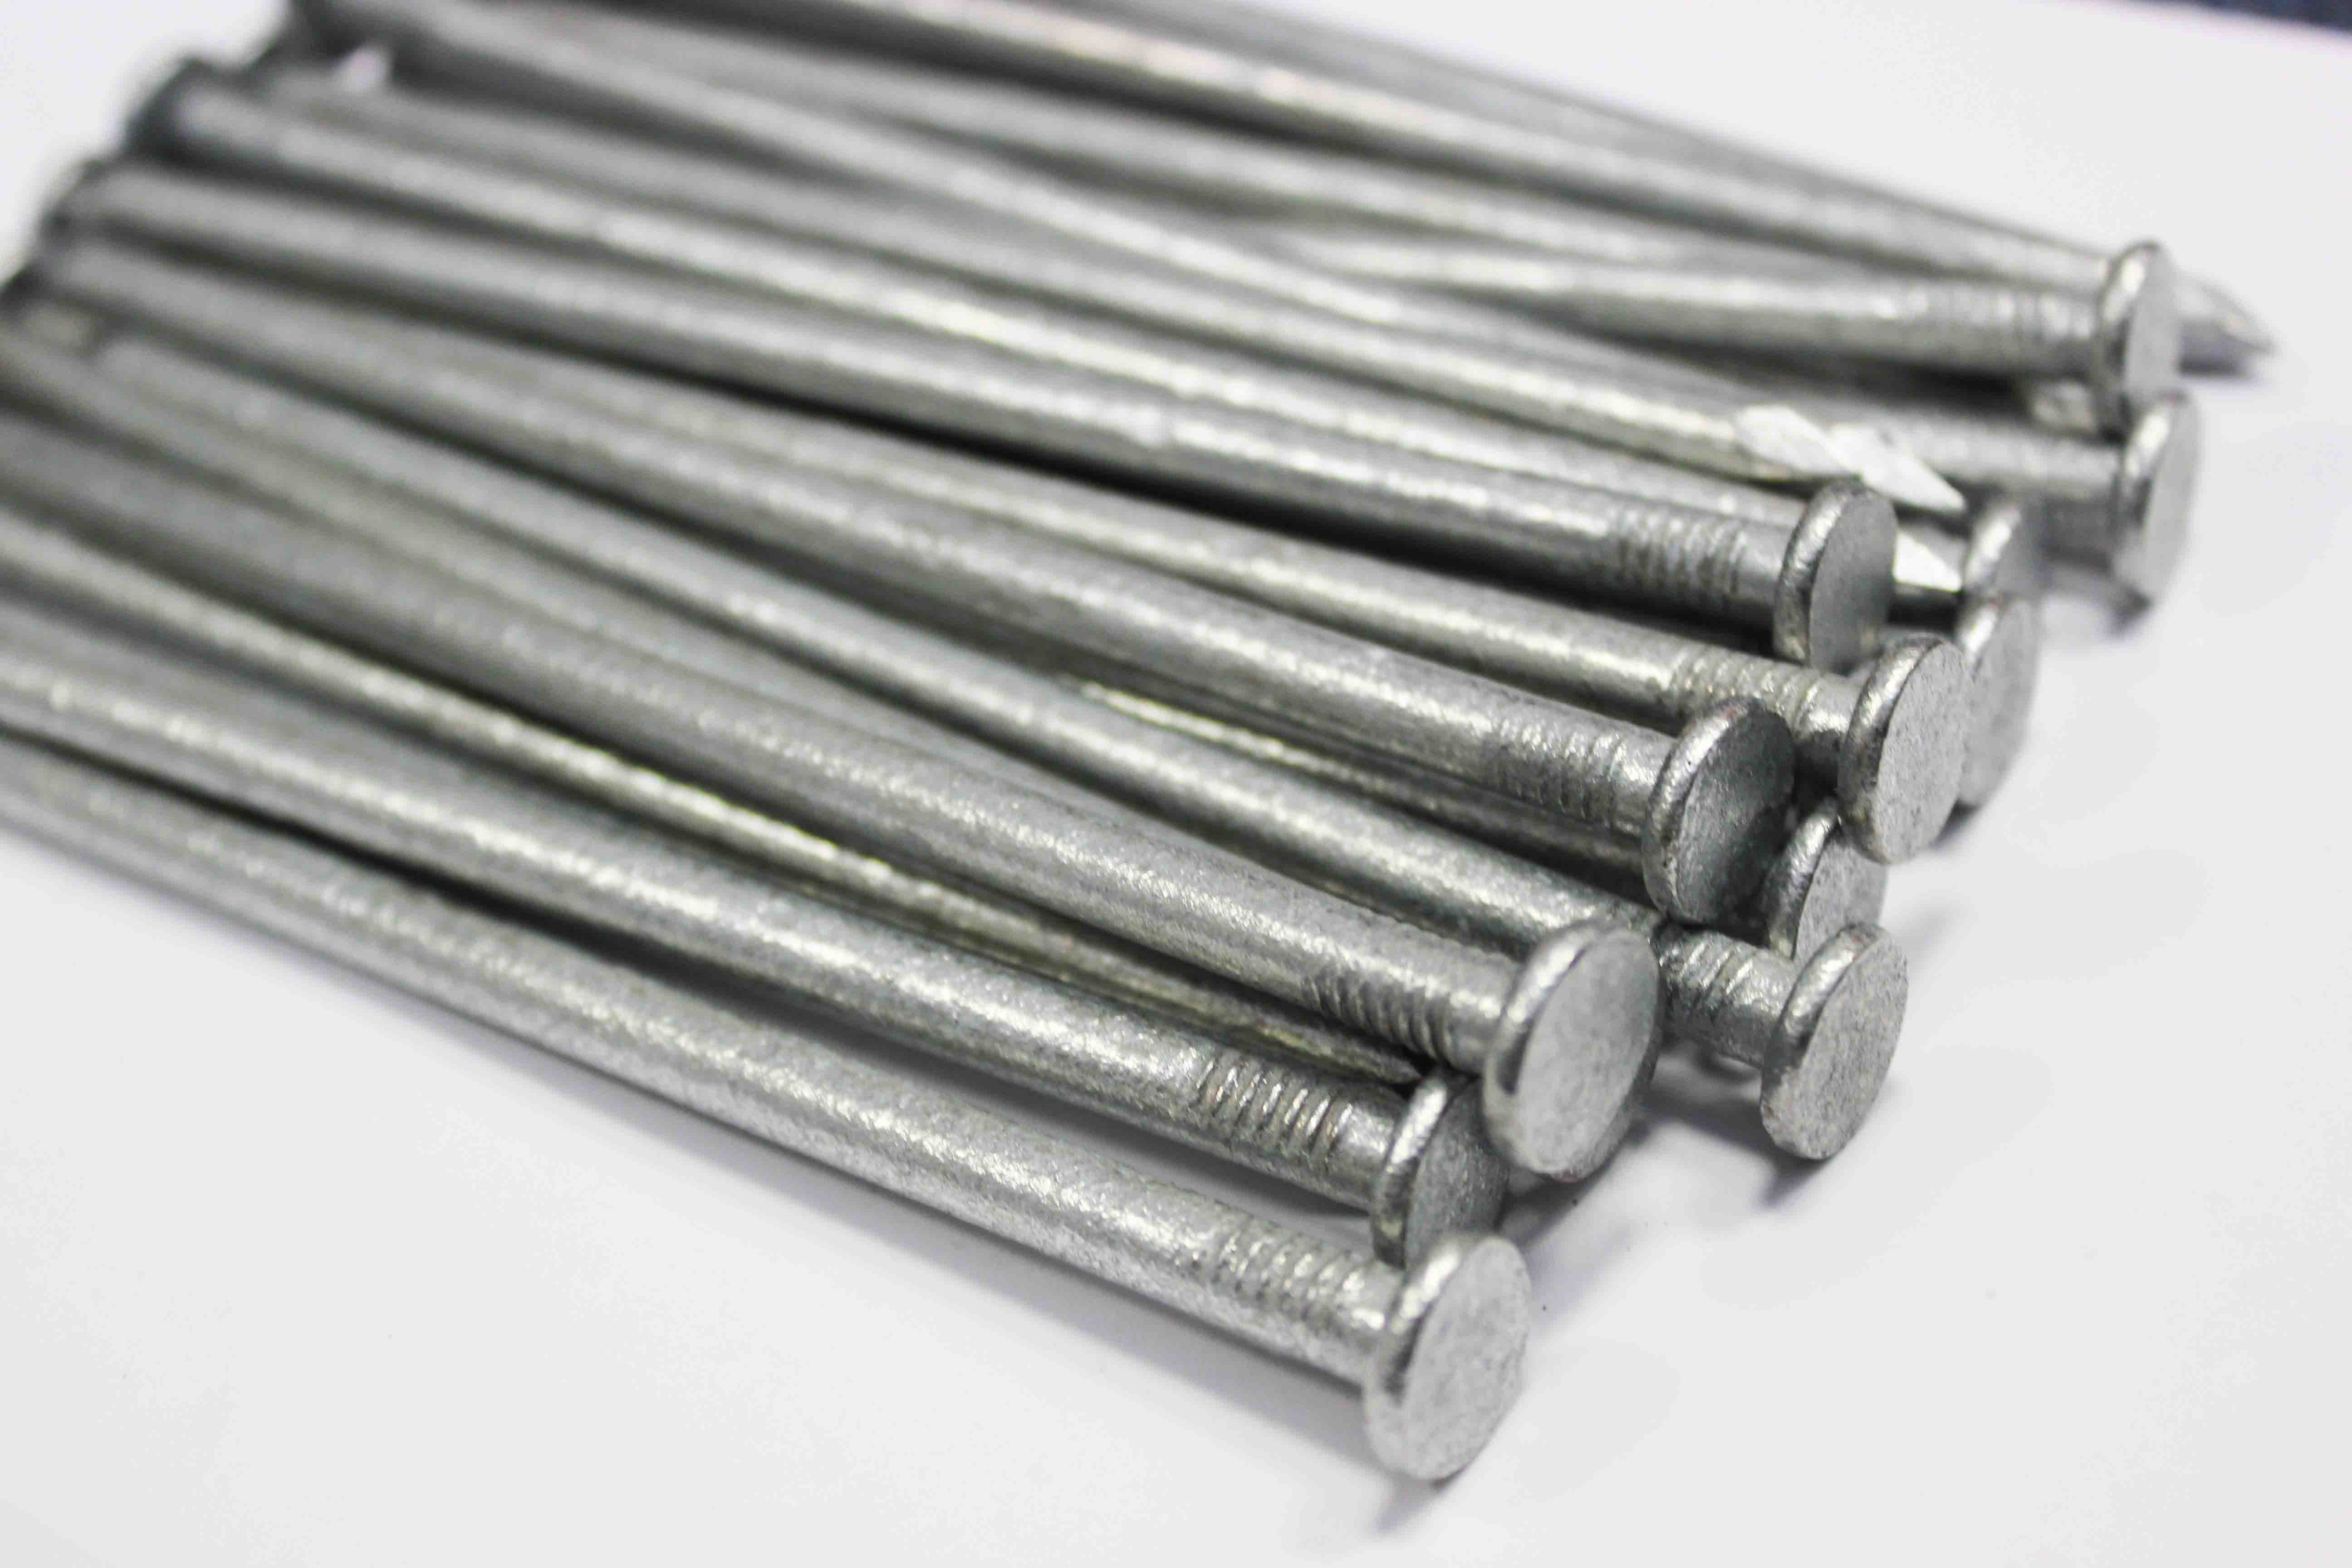 6 inch galvanised fencing nails